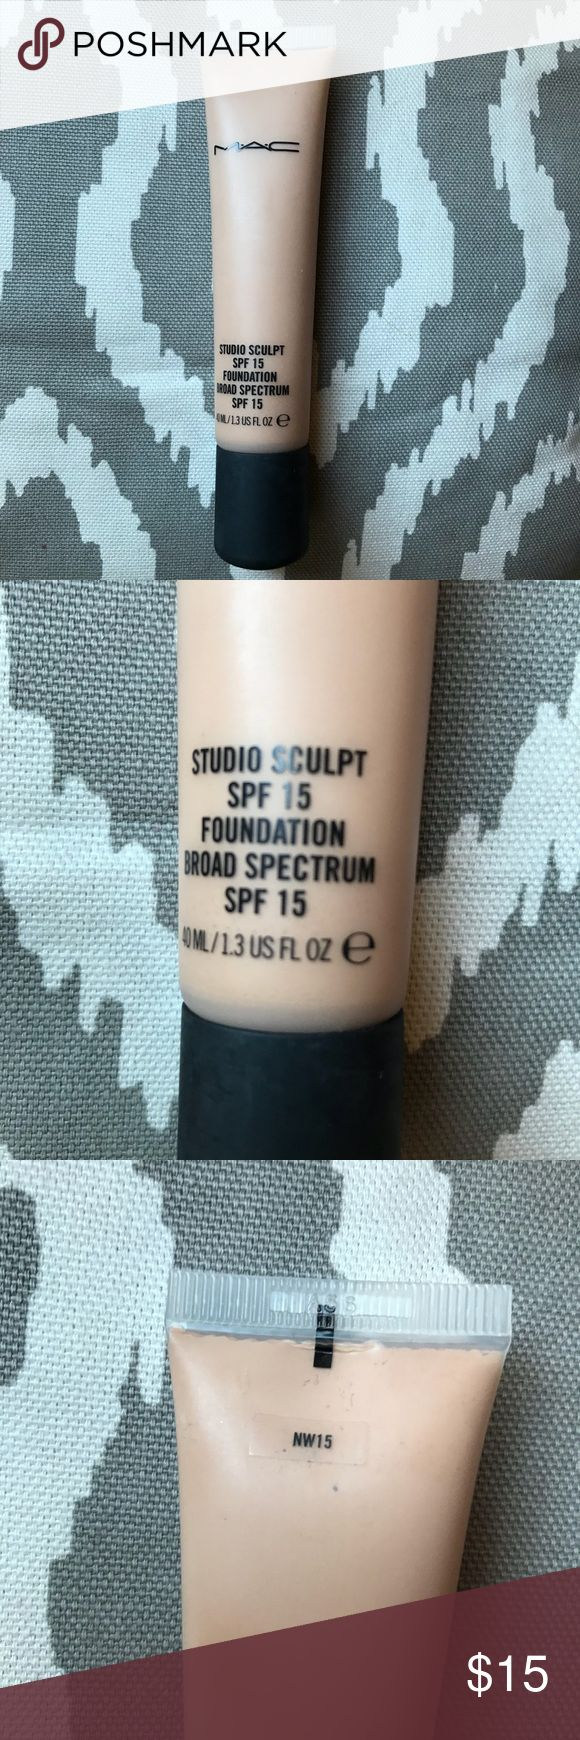 MAC Studio Sculpt SPF 15 Foundation- Shade NW 15 Gel based foundation that offers medium to full coverage with natural satin finish. Shade NW 15. Only used a few times, it is still very full. This is real MAC bought in December '17. MAC Cosmetics Makeup Foundation